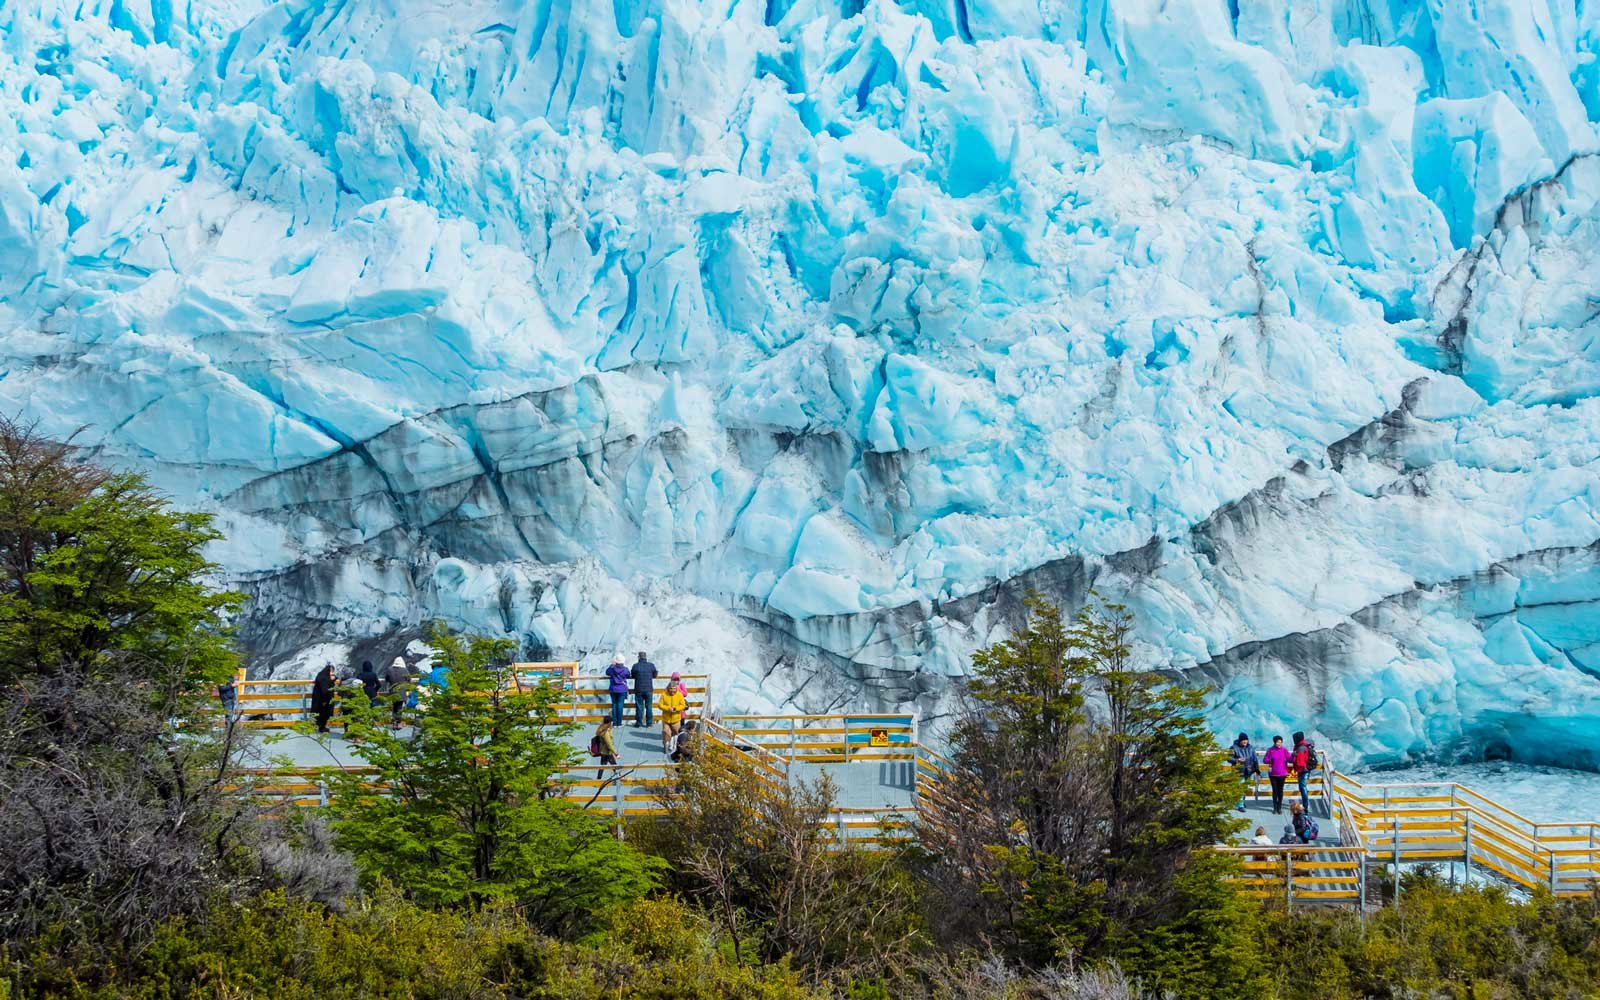 Tourists on a viewing platform at the Perito Moreno glacier in Argentina